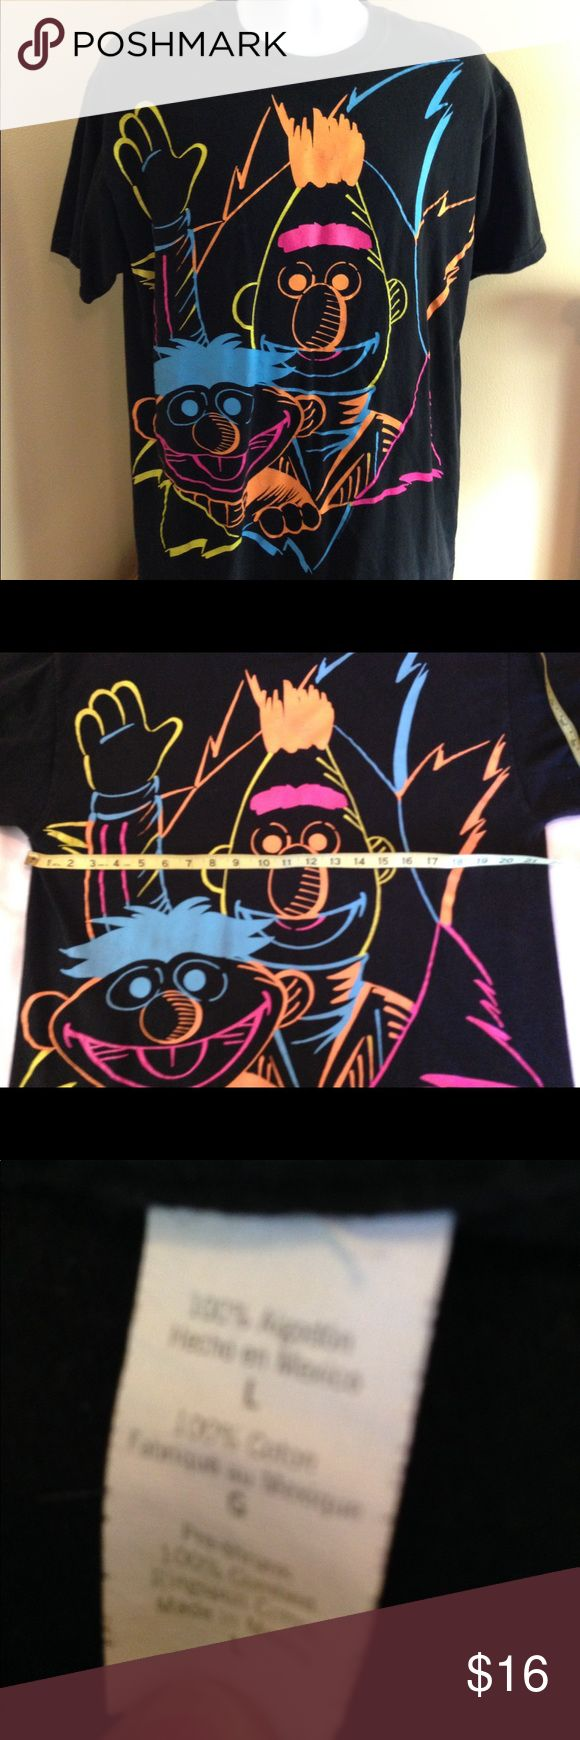 "Sesame Street Neon Bert Ernie Mens Tshirt Sz L Sesame Street Neon Bert Ernie Mens Tshirt Sz L in great preowned condition. Armpit to armpit 21"", cool retro shirt! Sesame Street Shirts Tees - Short Sleeve"